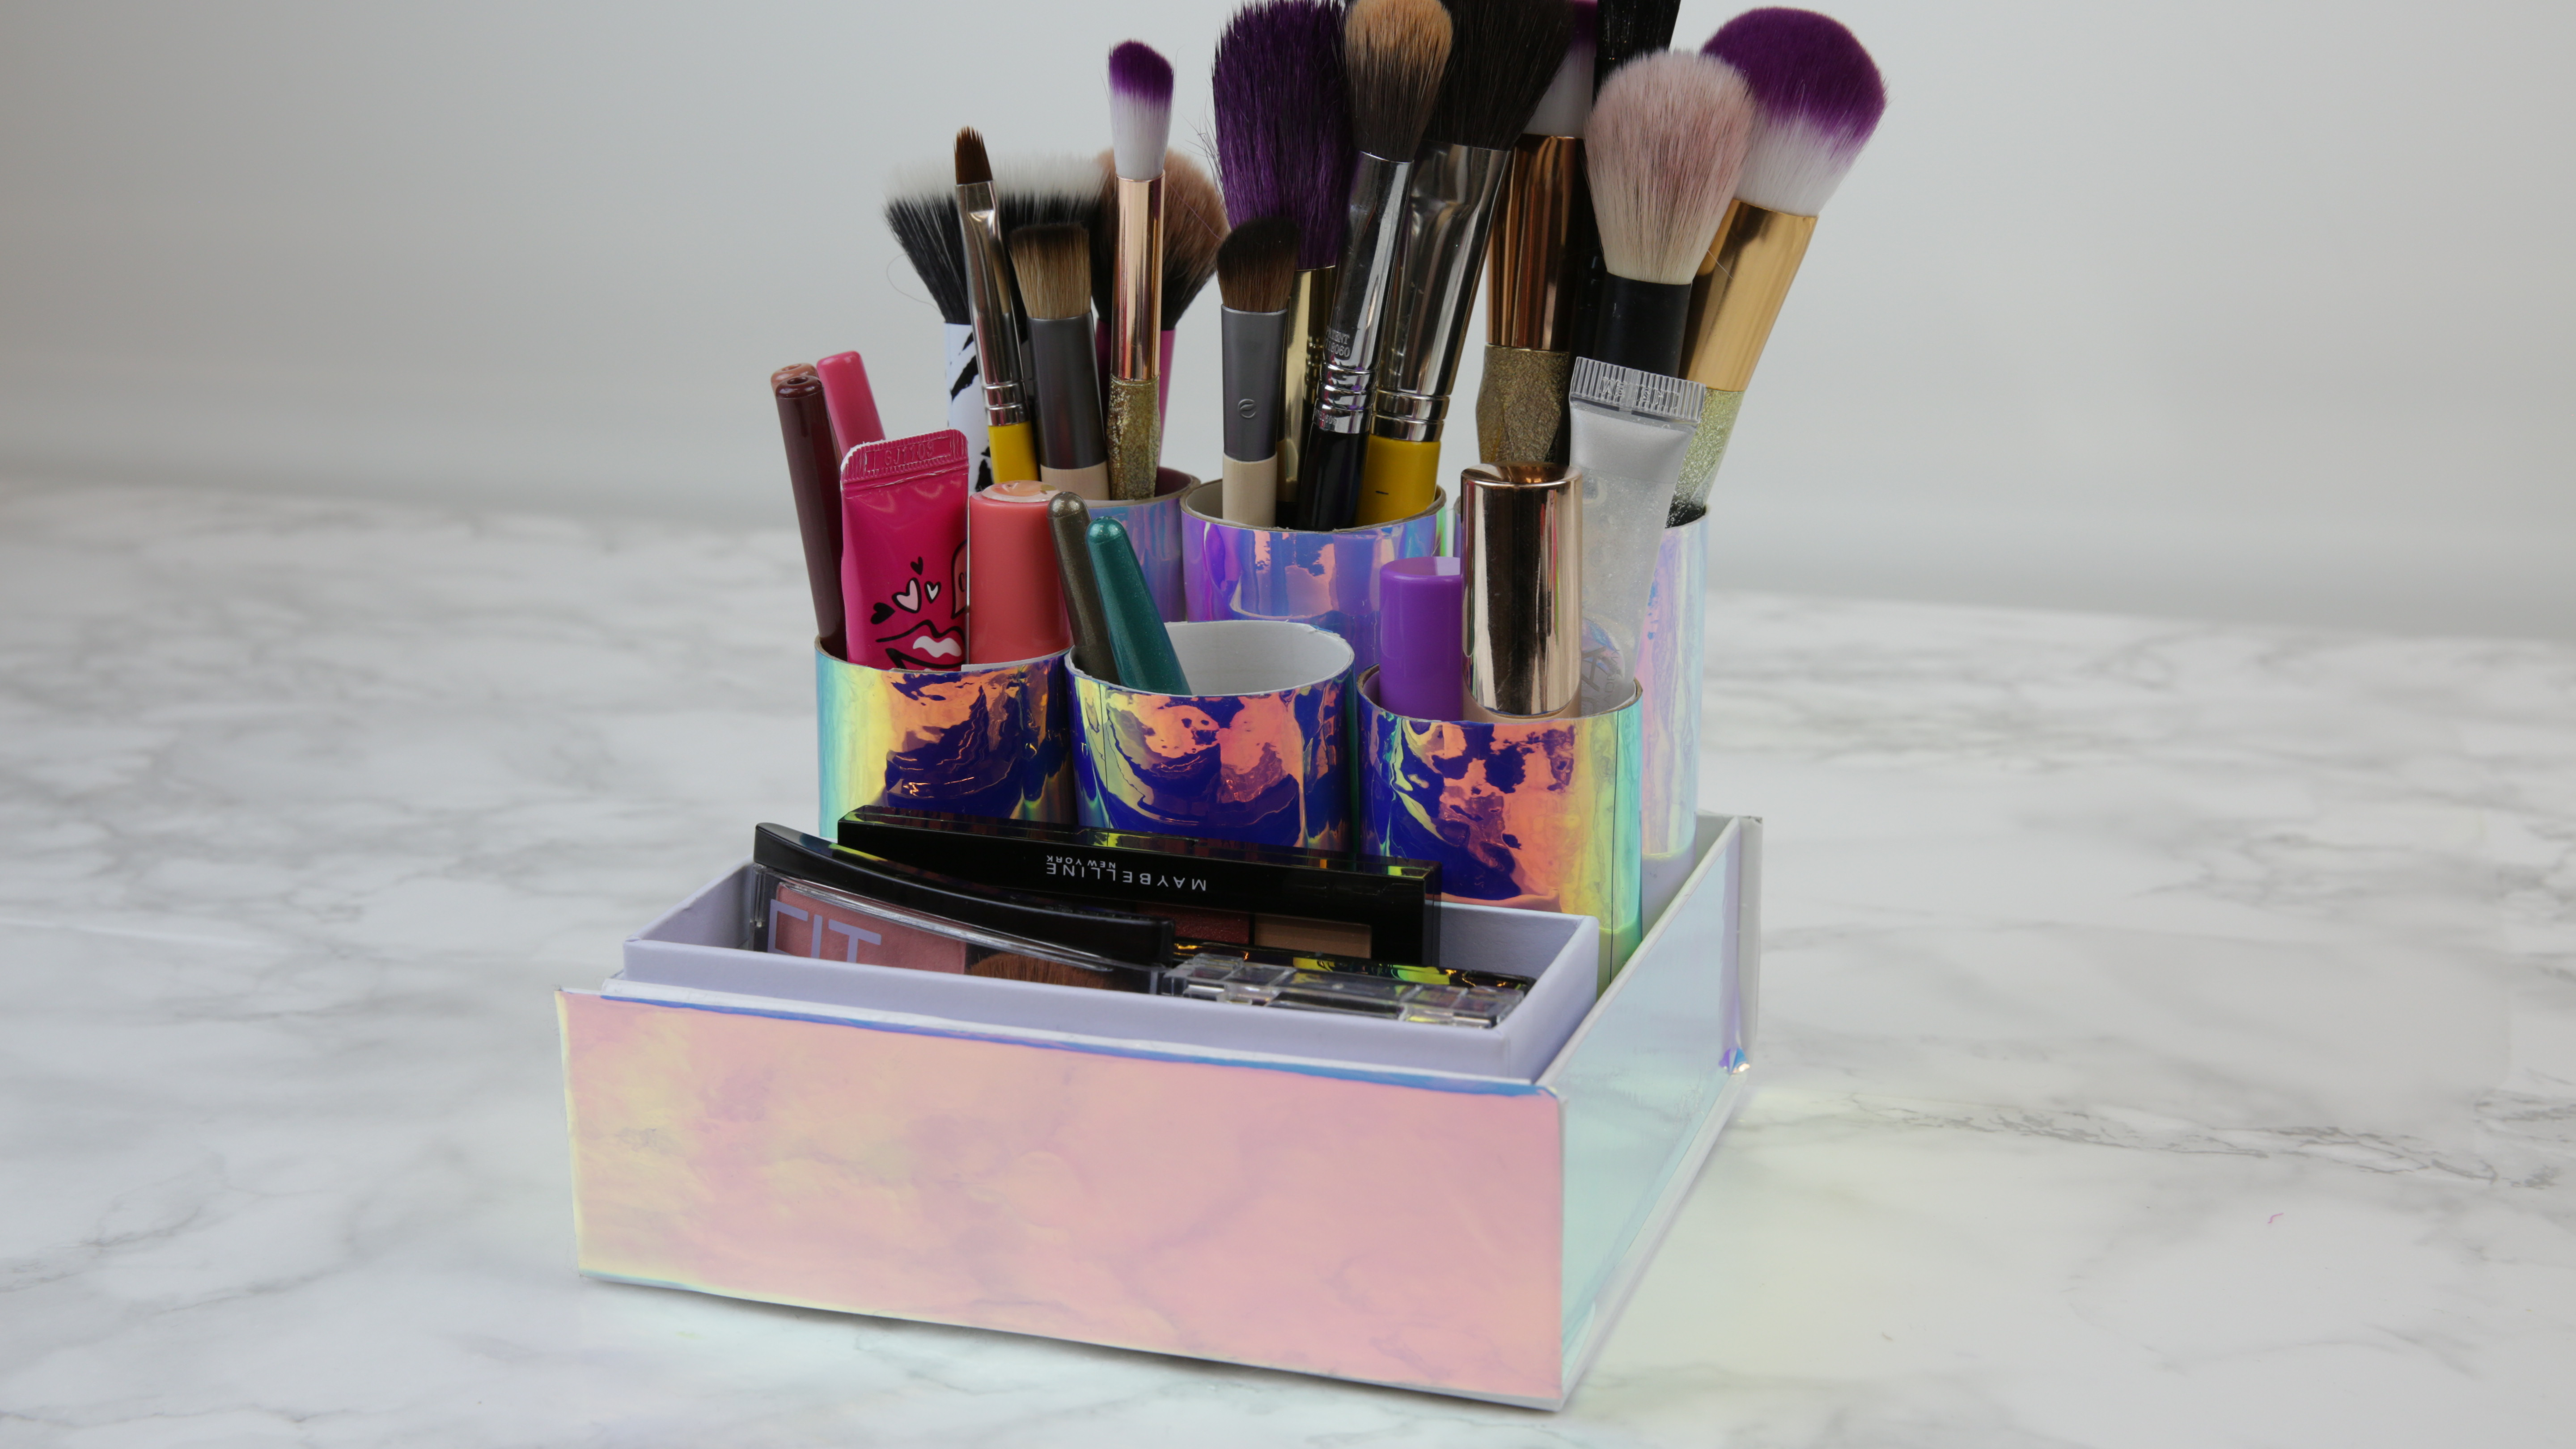 This DIY toilet roll makeup organizer is the cure to our messy medicine cabinets